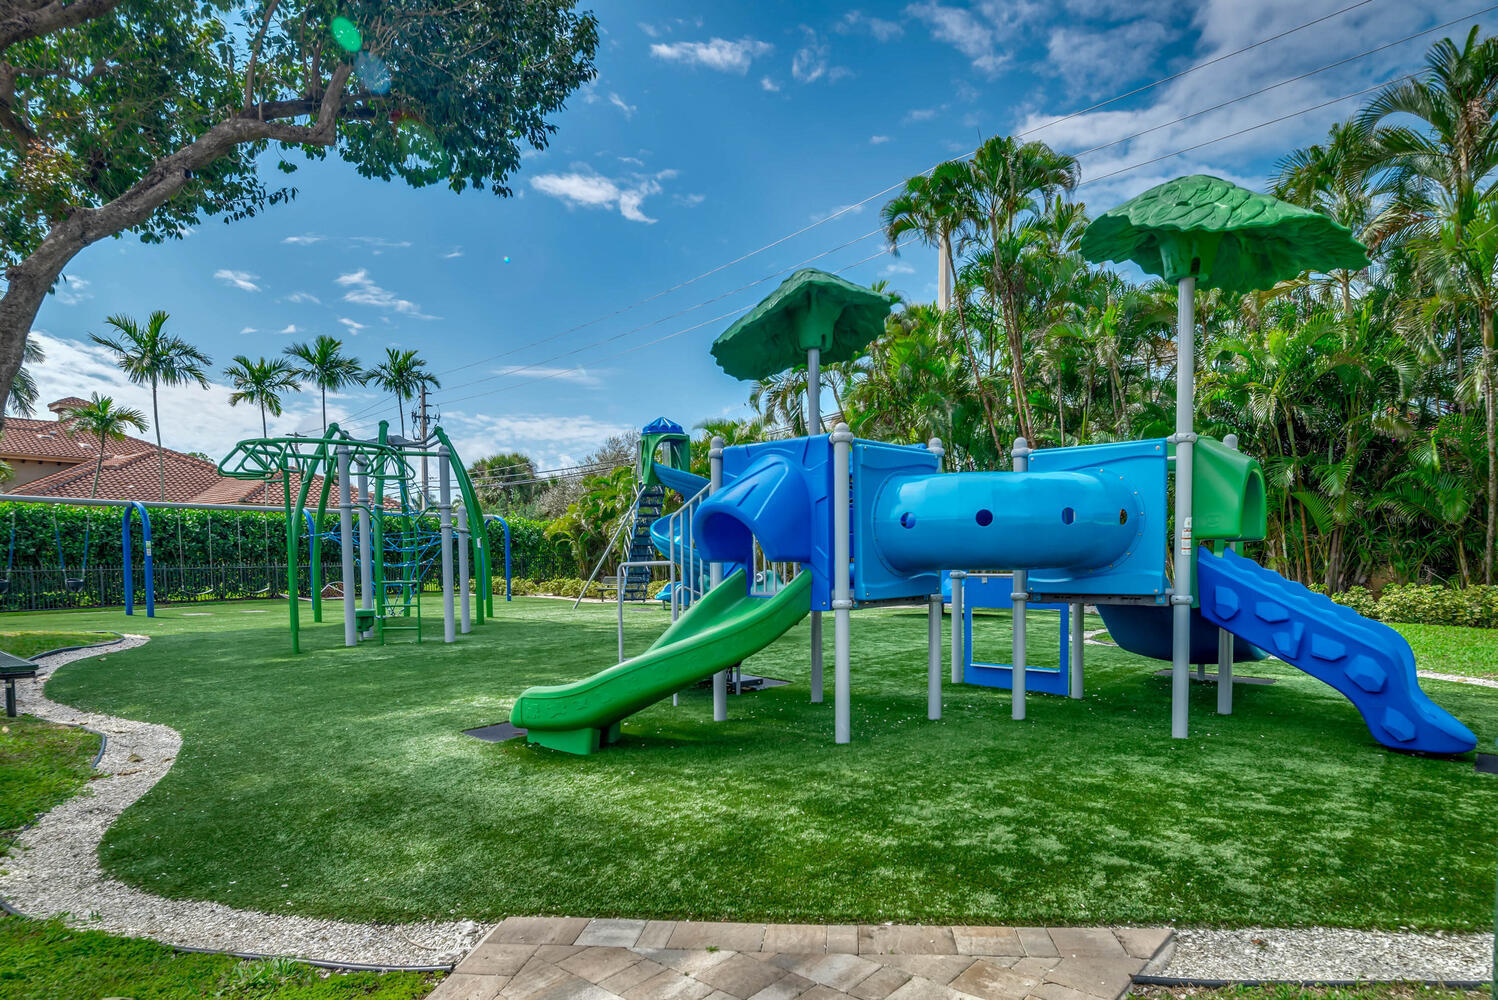 Playground in walking distance of home